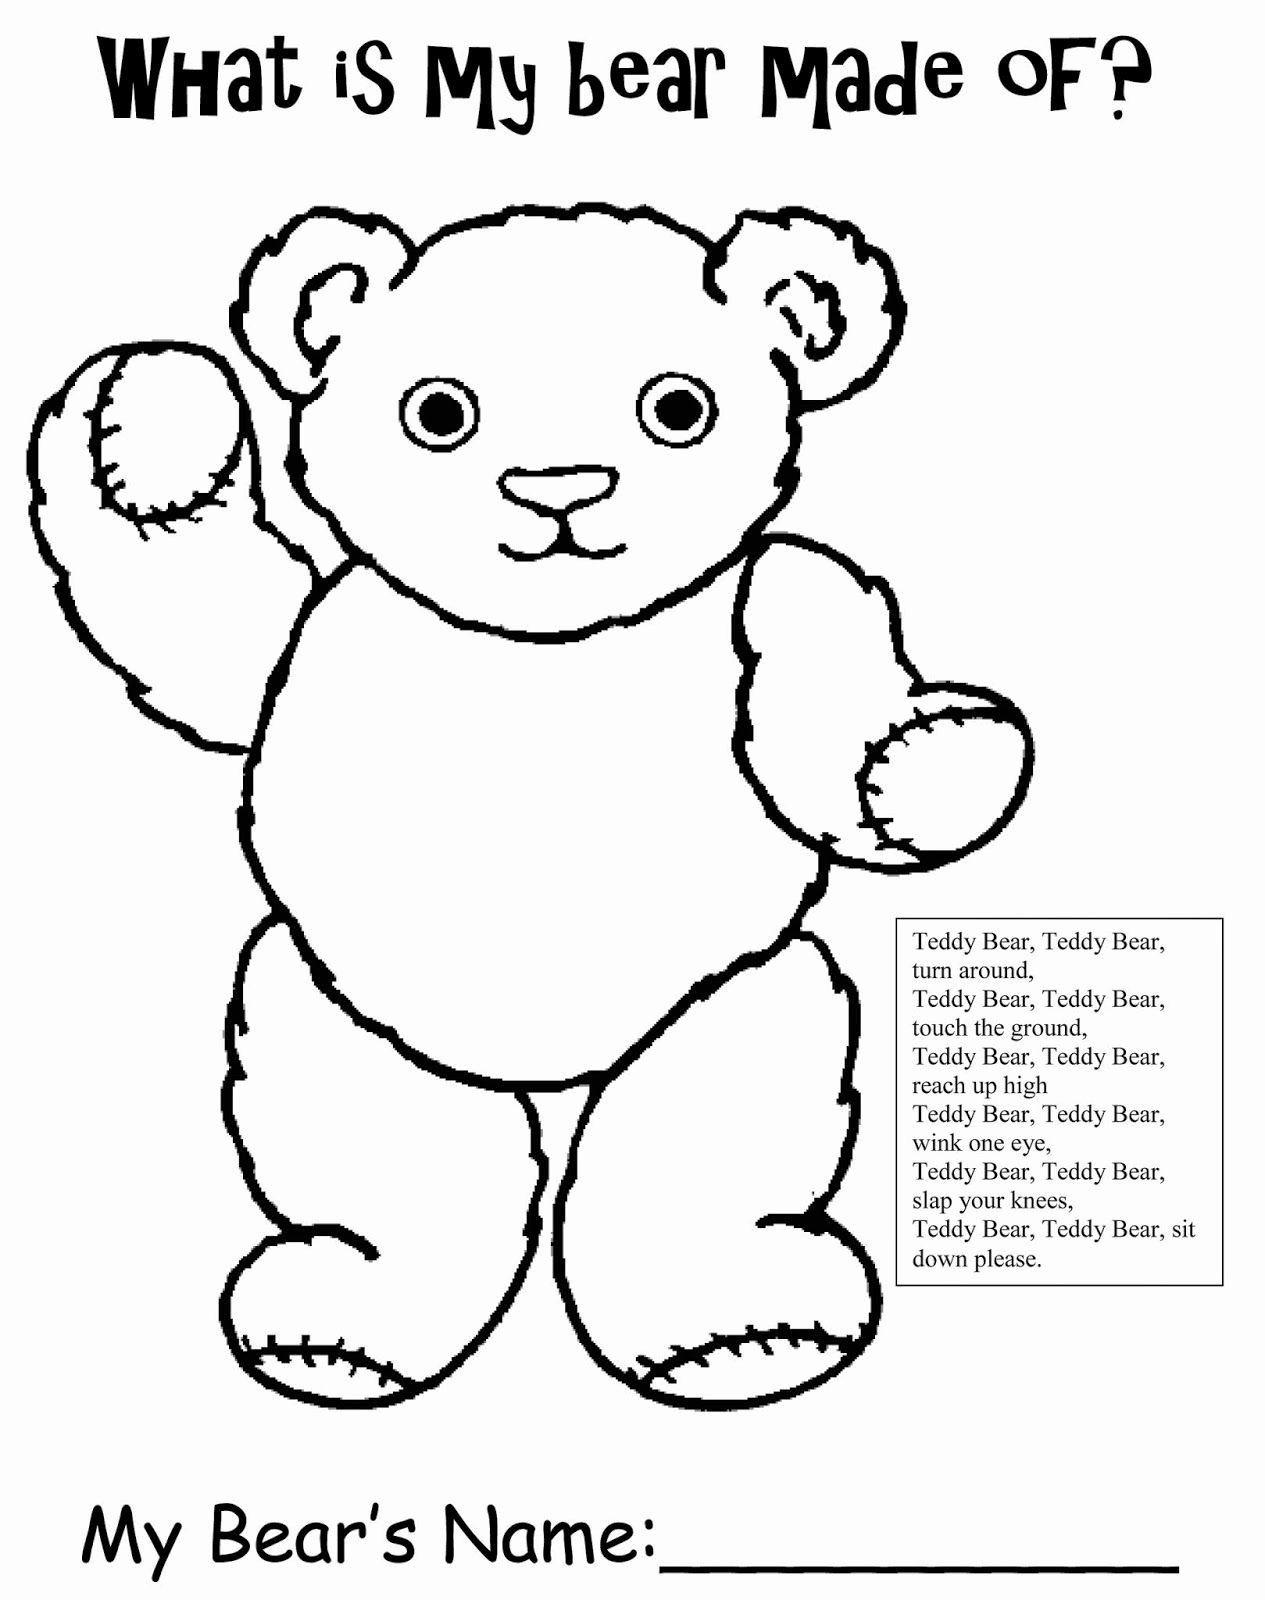 Teddy Bear Worksheets for Preschoolers Unique Inspiration organization